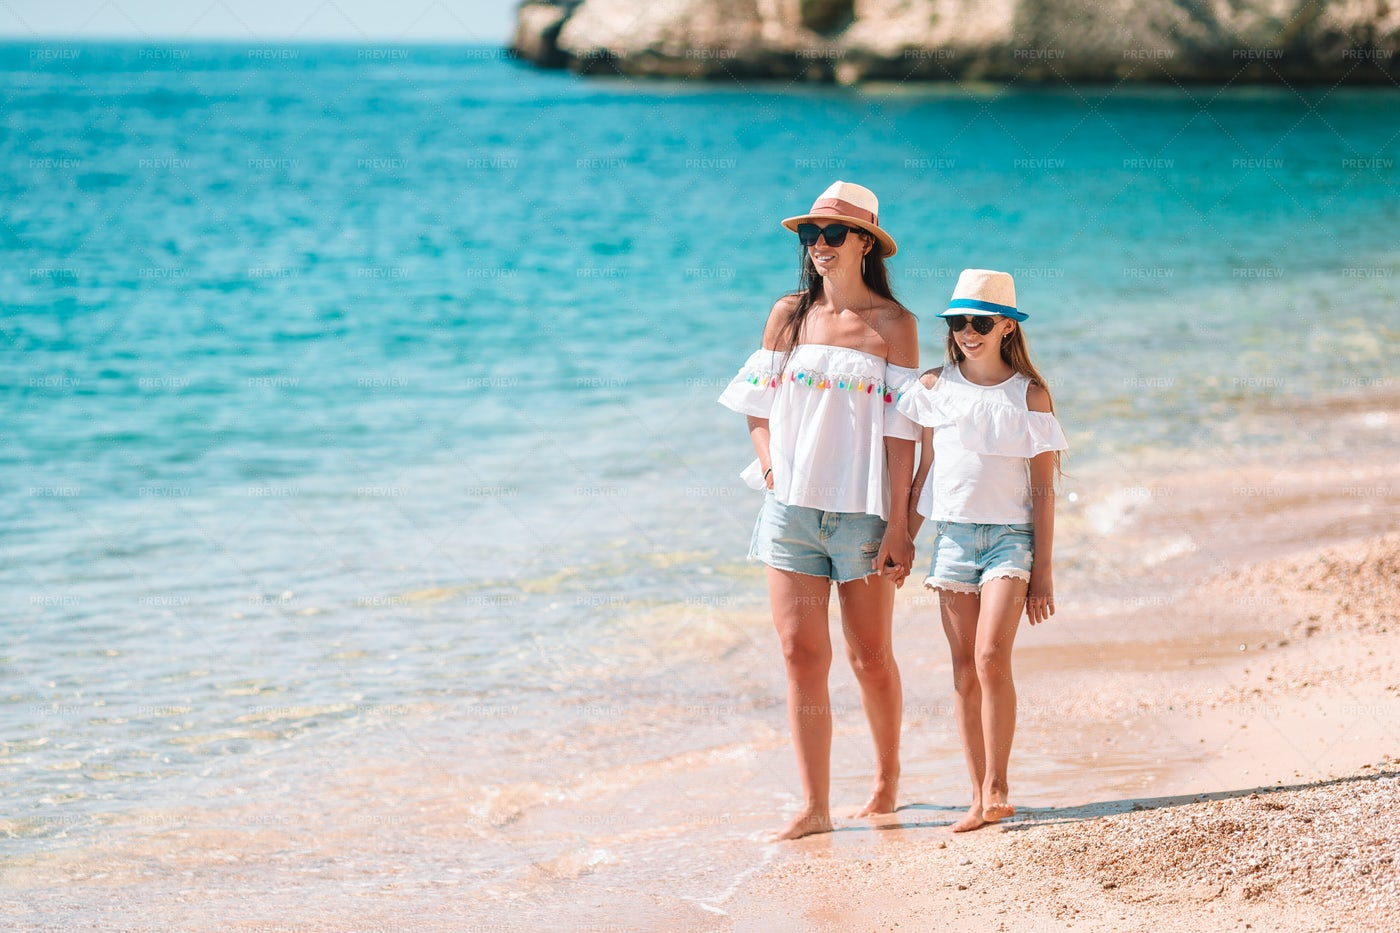 Mom And Daughter Walking In The Sand: Stock Photos